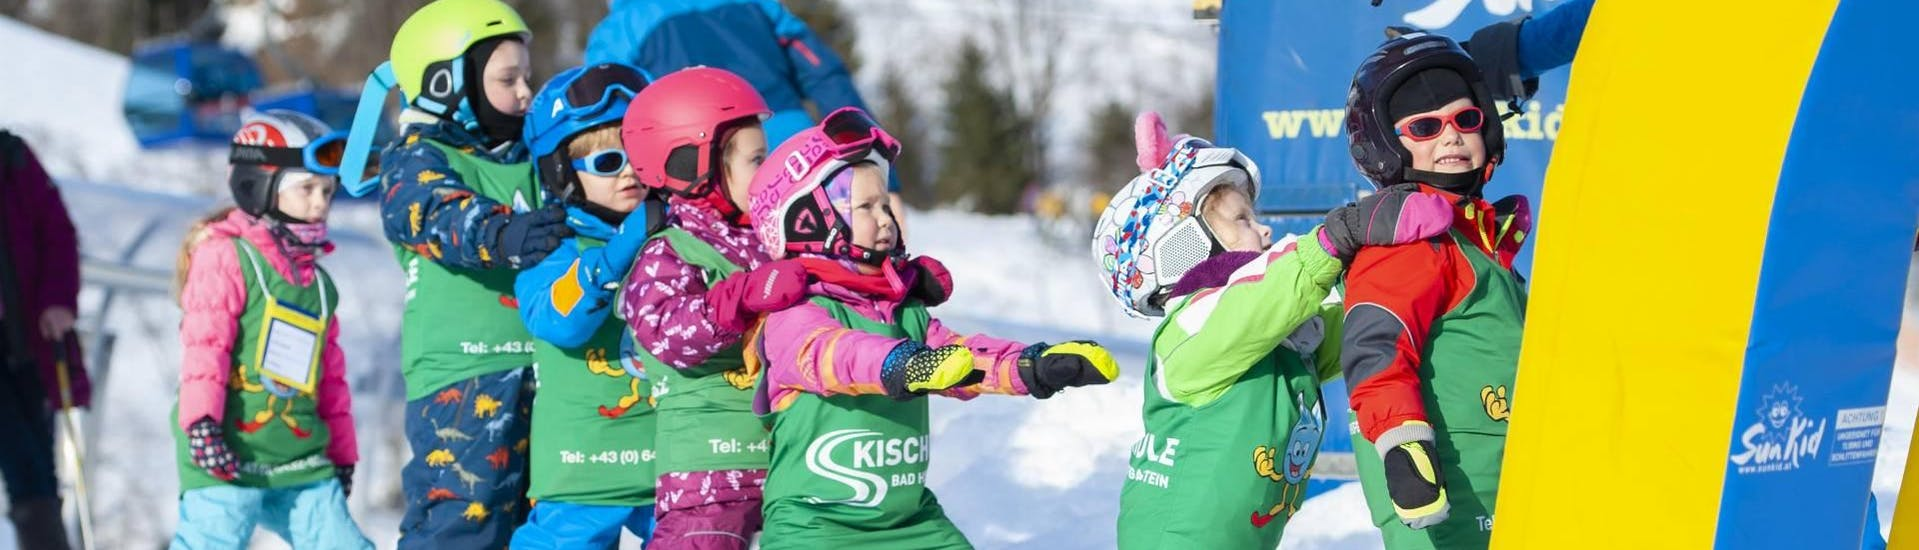 a group of kids during their kids ski lessons Miniclub with skischule Bad Hofgastein.